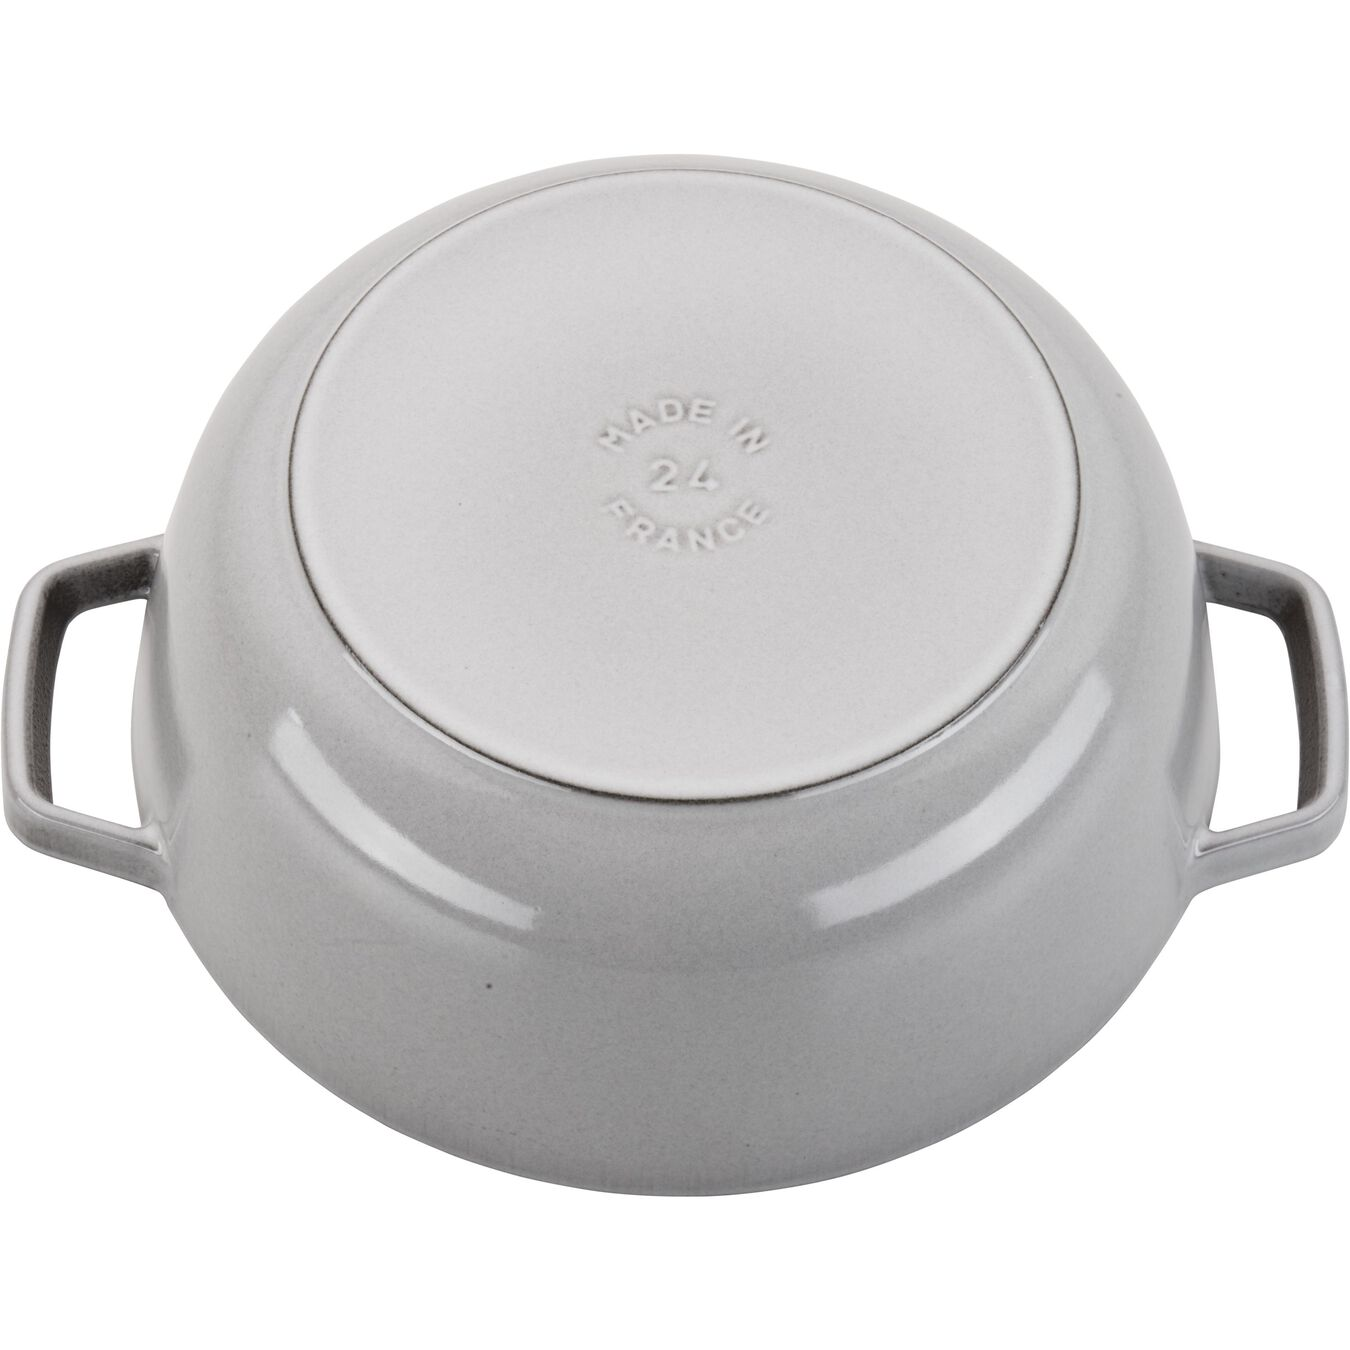 3.75 qt, French oven, graphite grey,,large 3